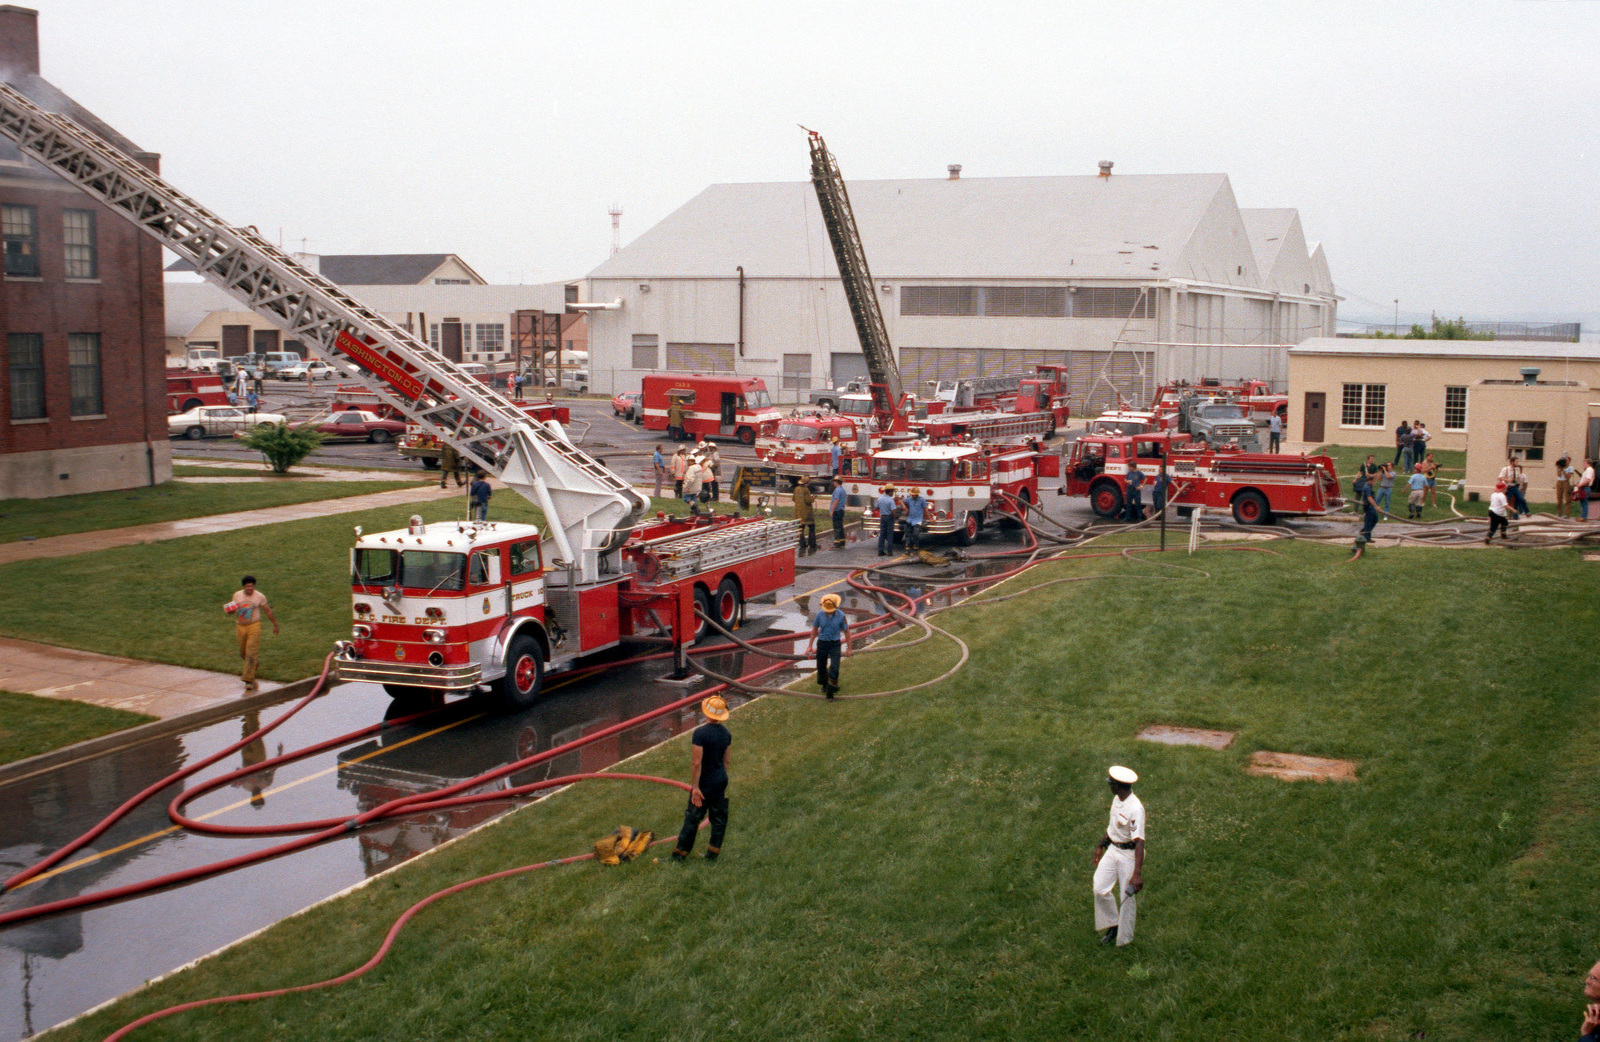 Several fire trucks from the District of Columbia Fire Department are used to assist the Naval District Washington Fire Department in controlling and extinguishing a fire at Enterprise Hall, Anacostia Naval Station